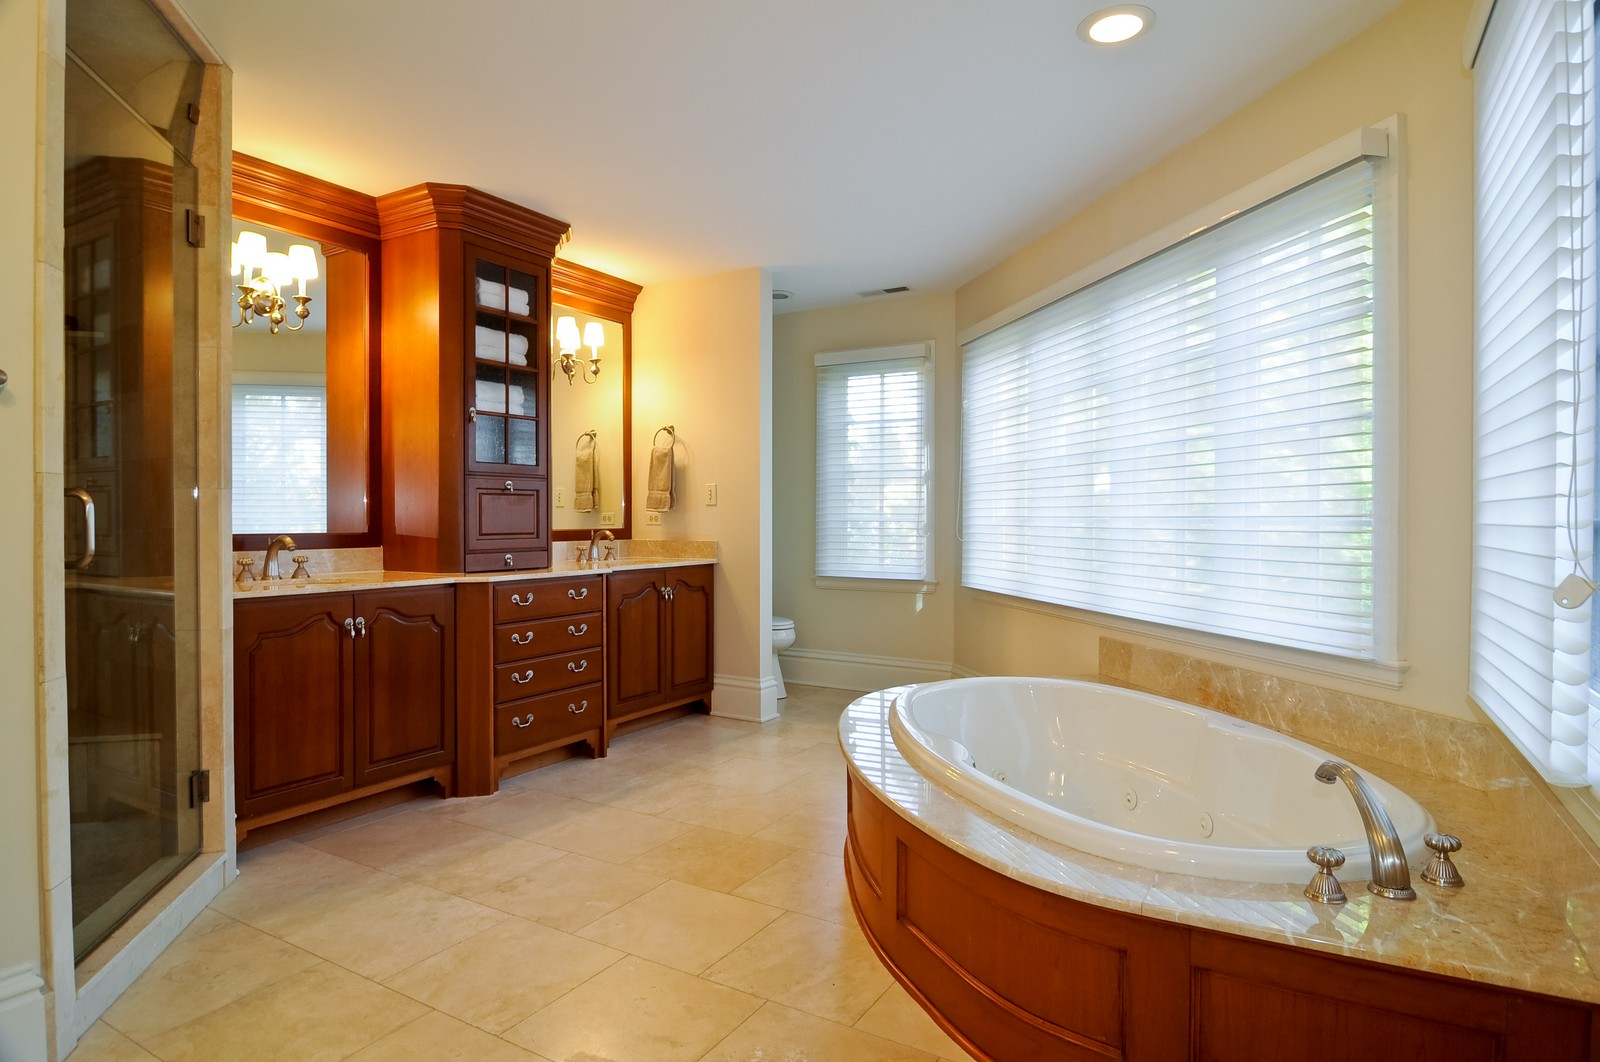 Real Estate Photography - 685 N. Forest Avenue, Glen Ellyn, IL, 60137 - Master Bathroom